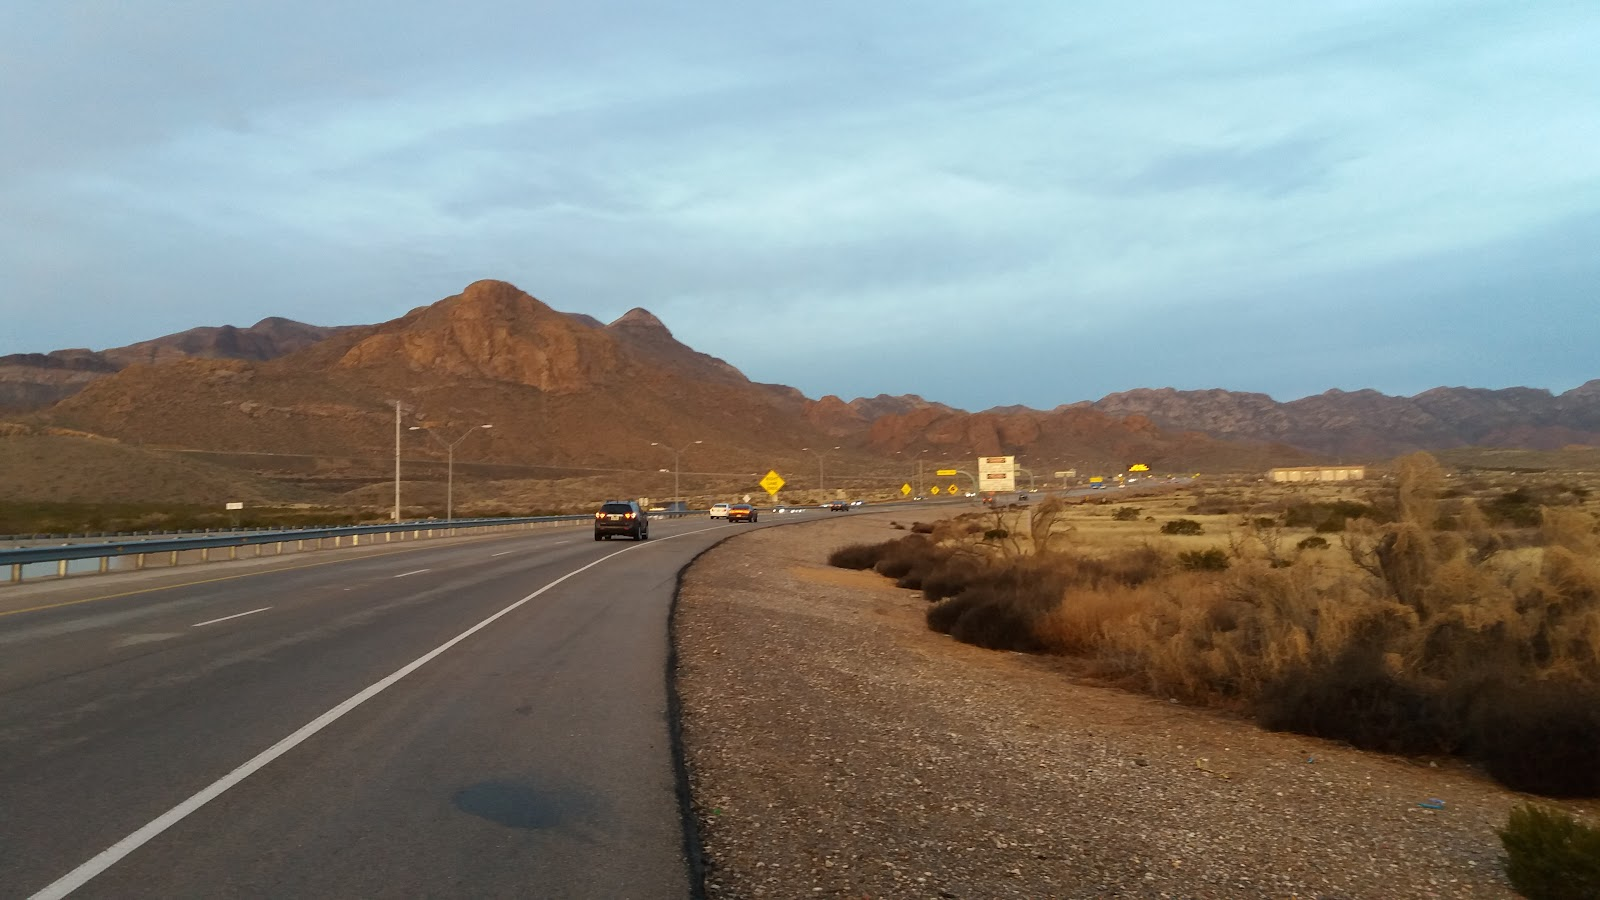 Cycling Smugglers Pass East - Transmountain Drive - Hwy 375and start of climb